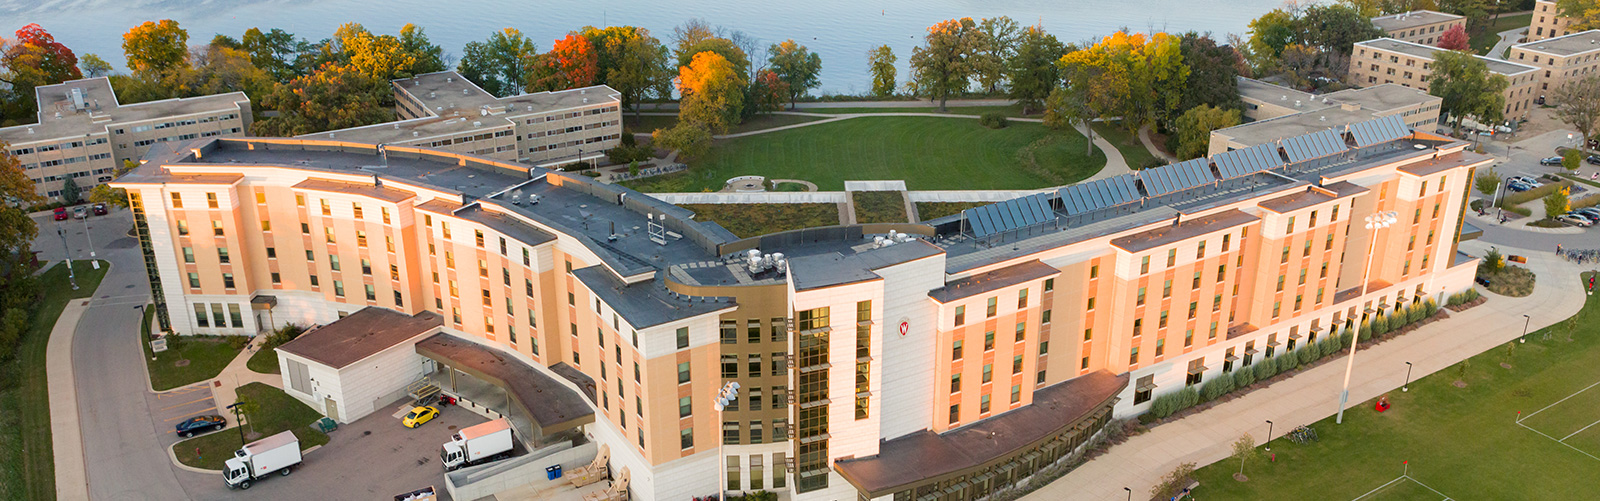 Aerial photo of Dejope Residence Hall